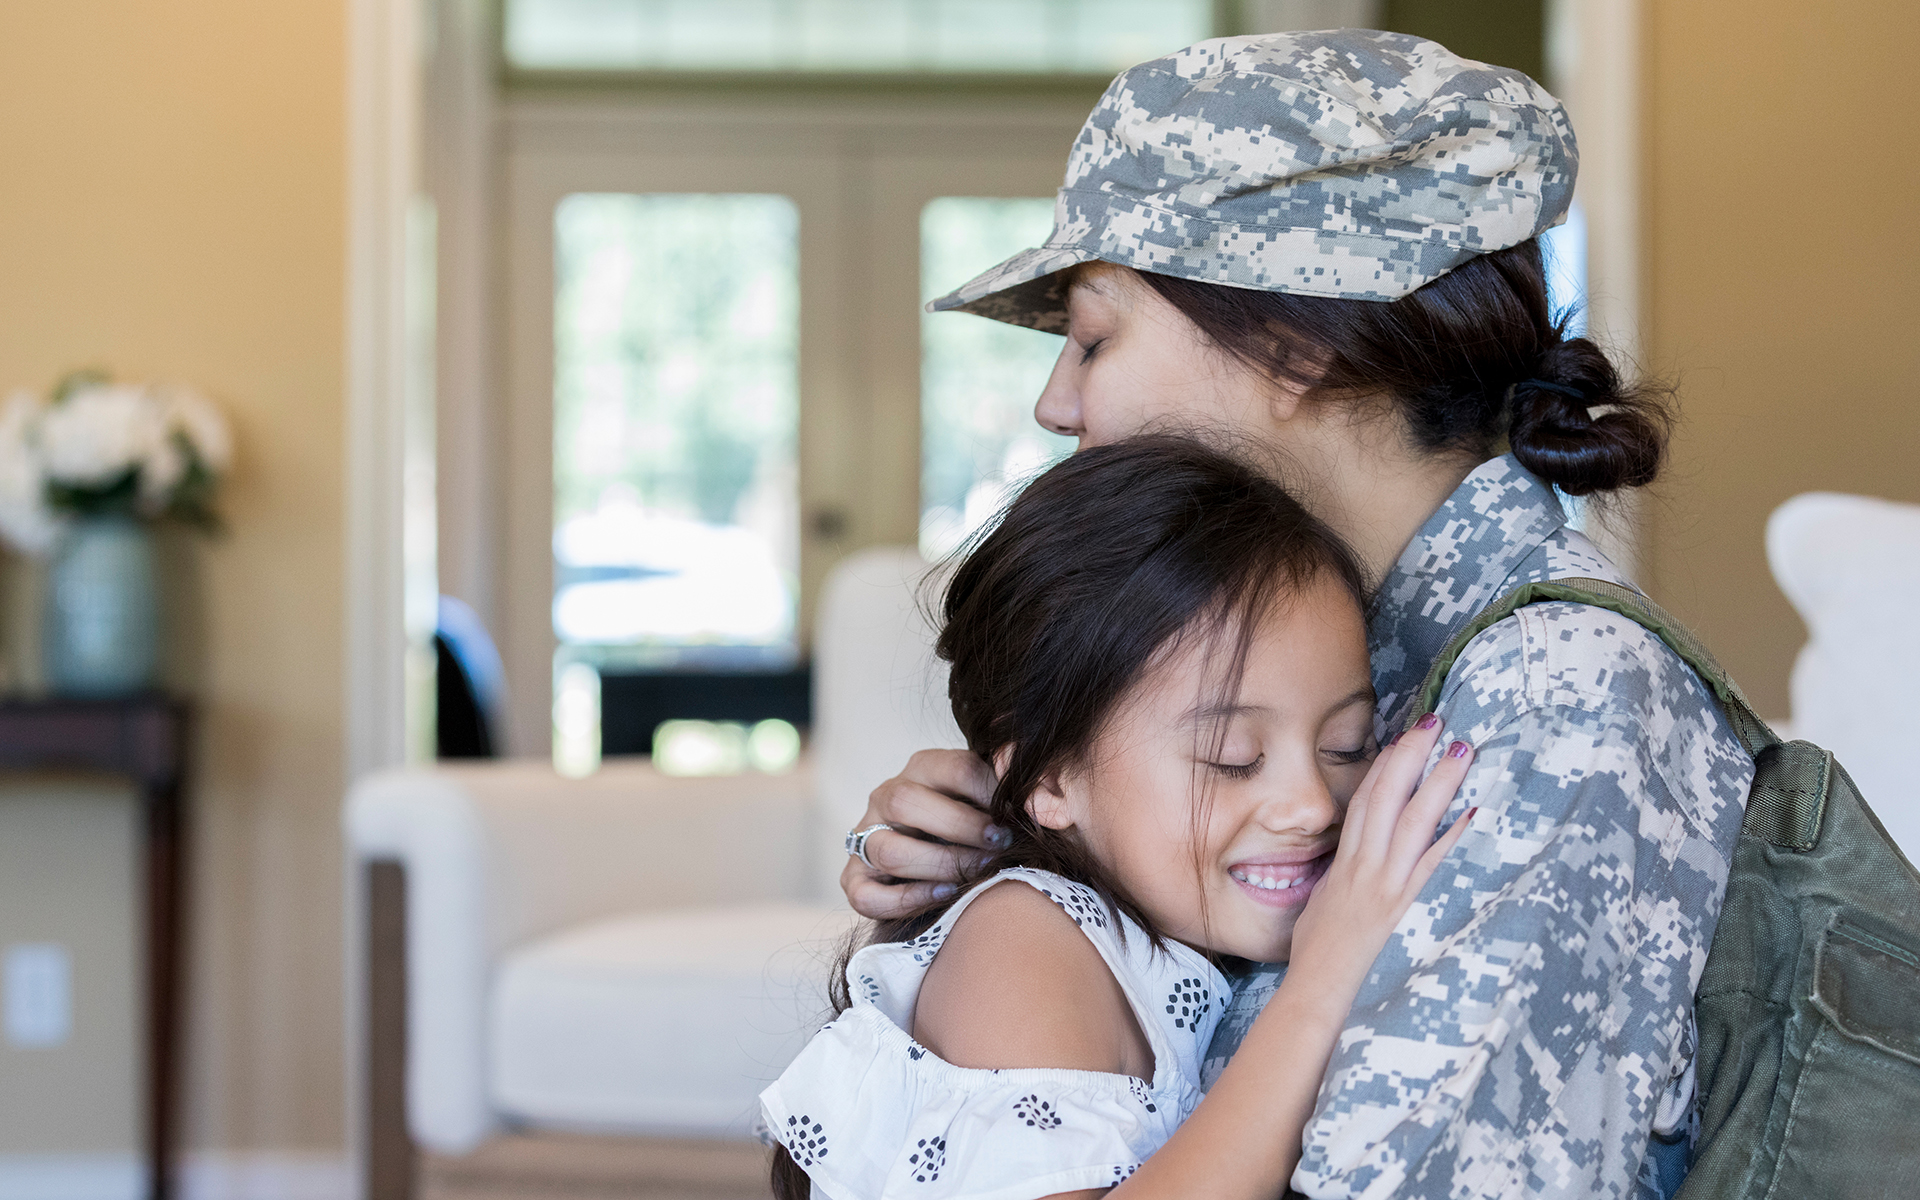 A veteran and her child having a loving embrace.